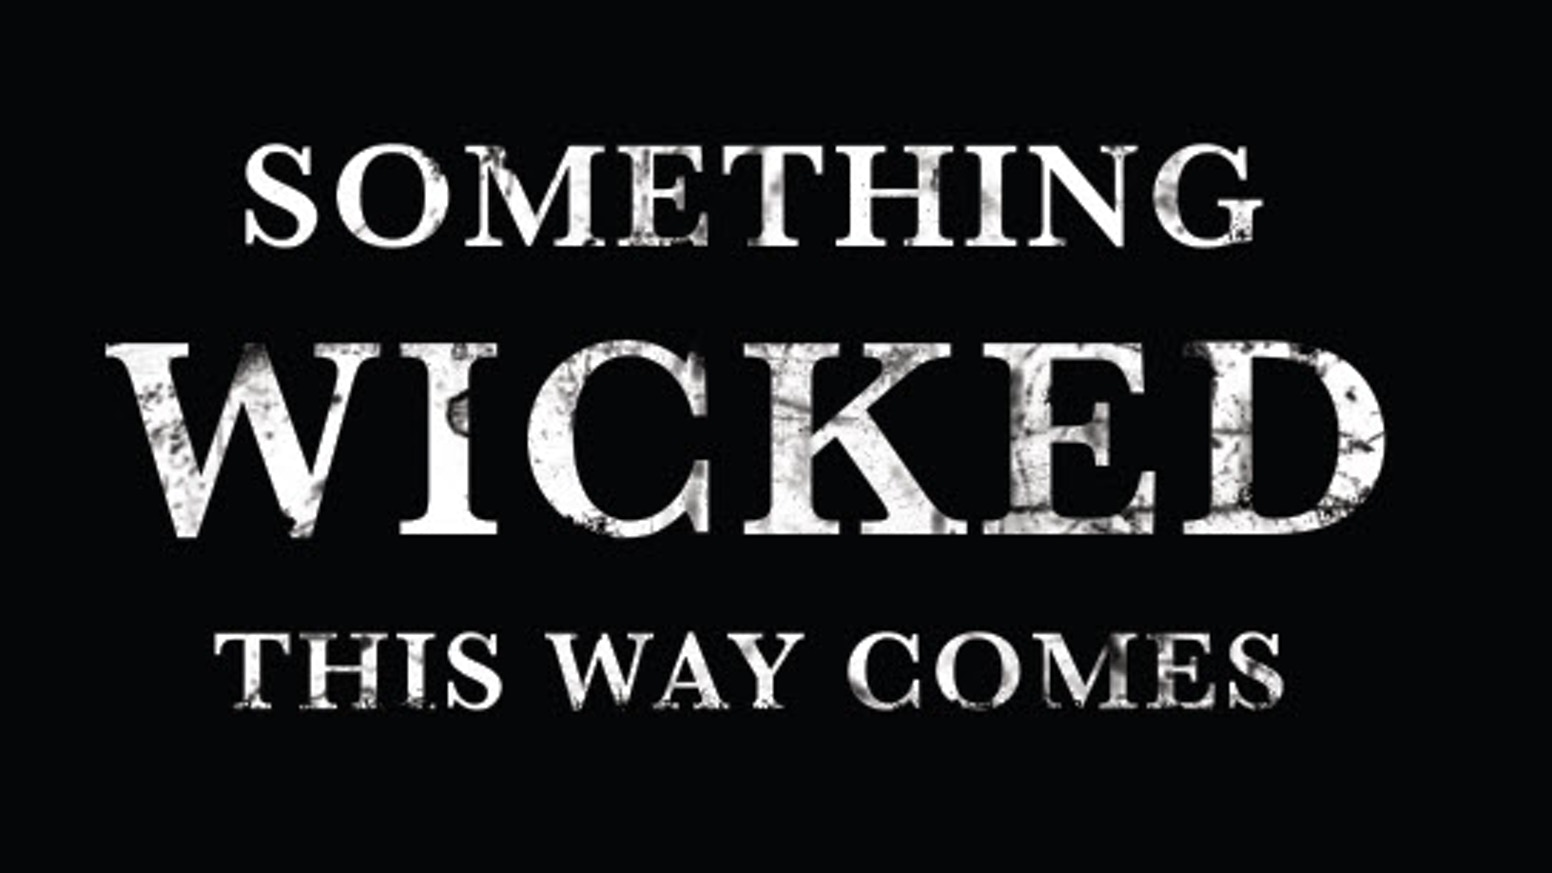 f68453eb90 Something Wicked This Way Comes - Documentary. A locally-made documentary  spotlighting the historical and contemporary significance of the area's  impact on